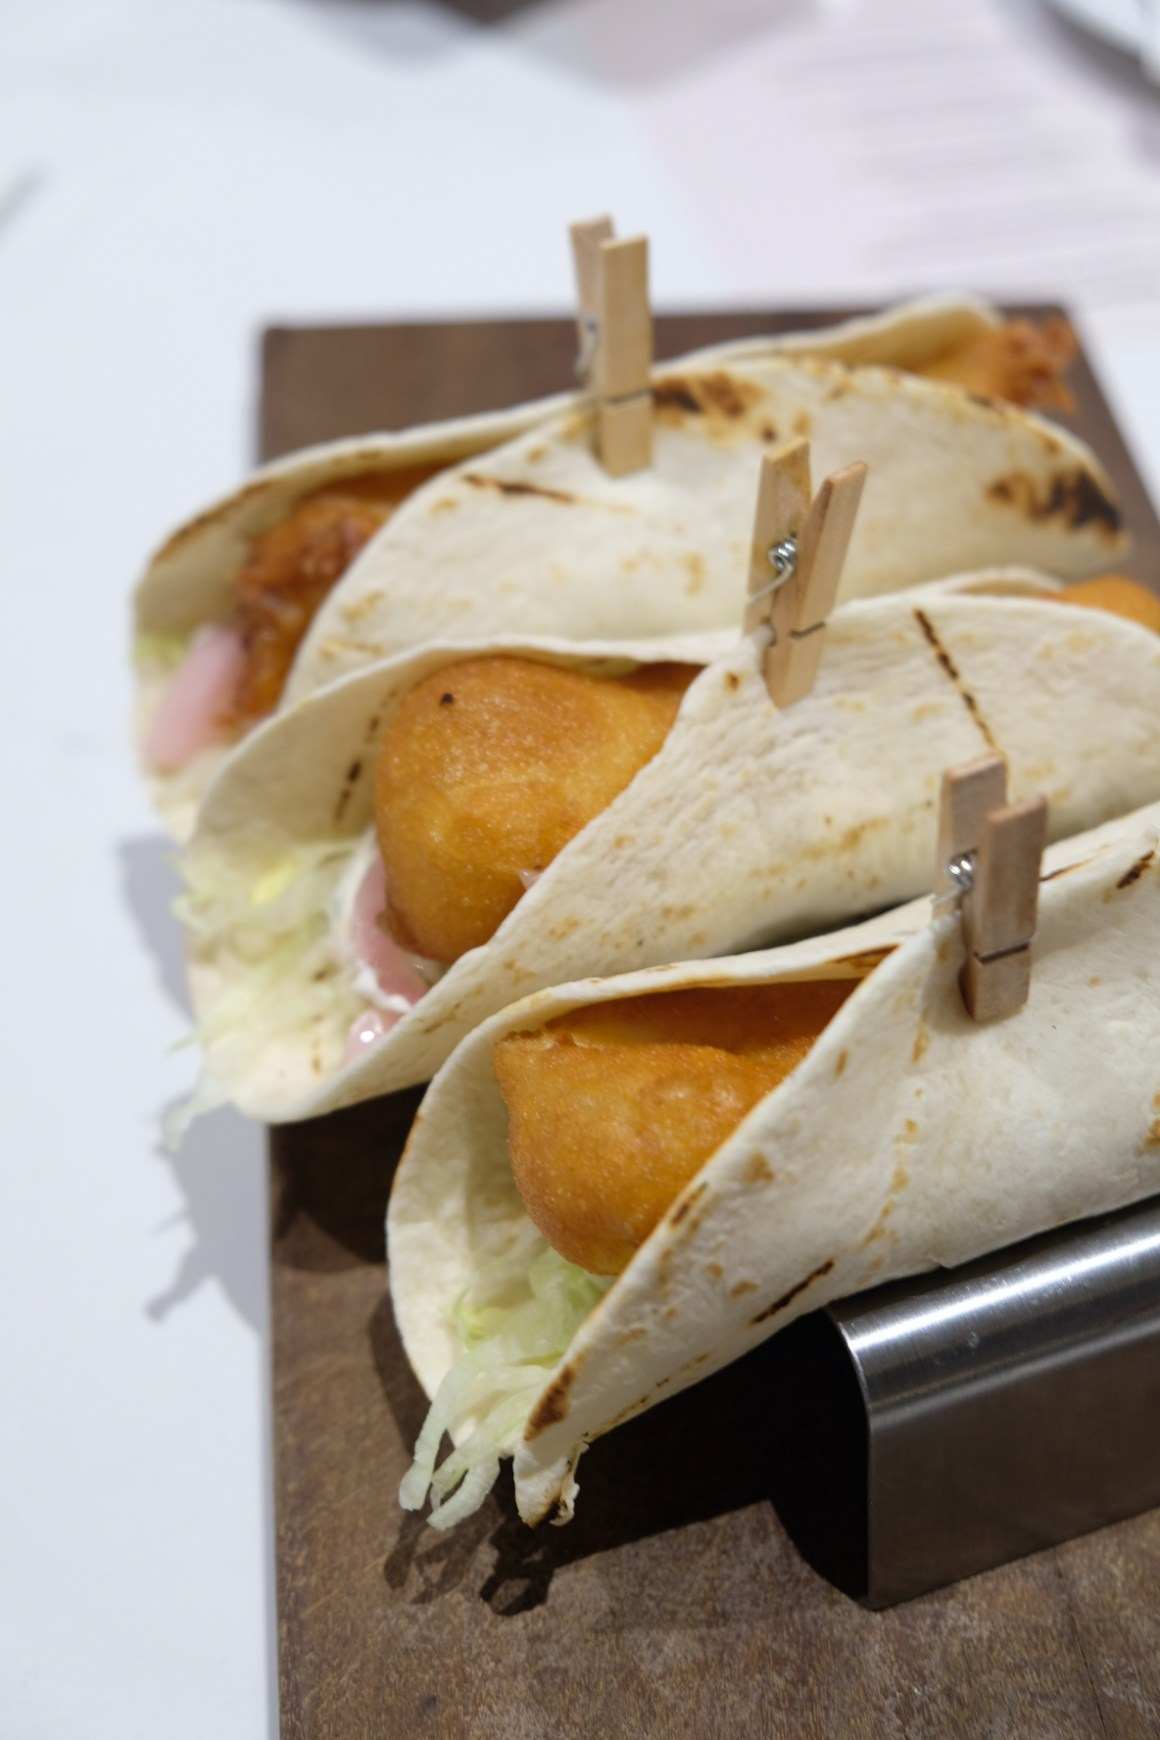 Tasty Taco And Mount-Garita At Crossroad Cafe, Singapore Marriott - Beer Battered Cod Fish